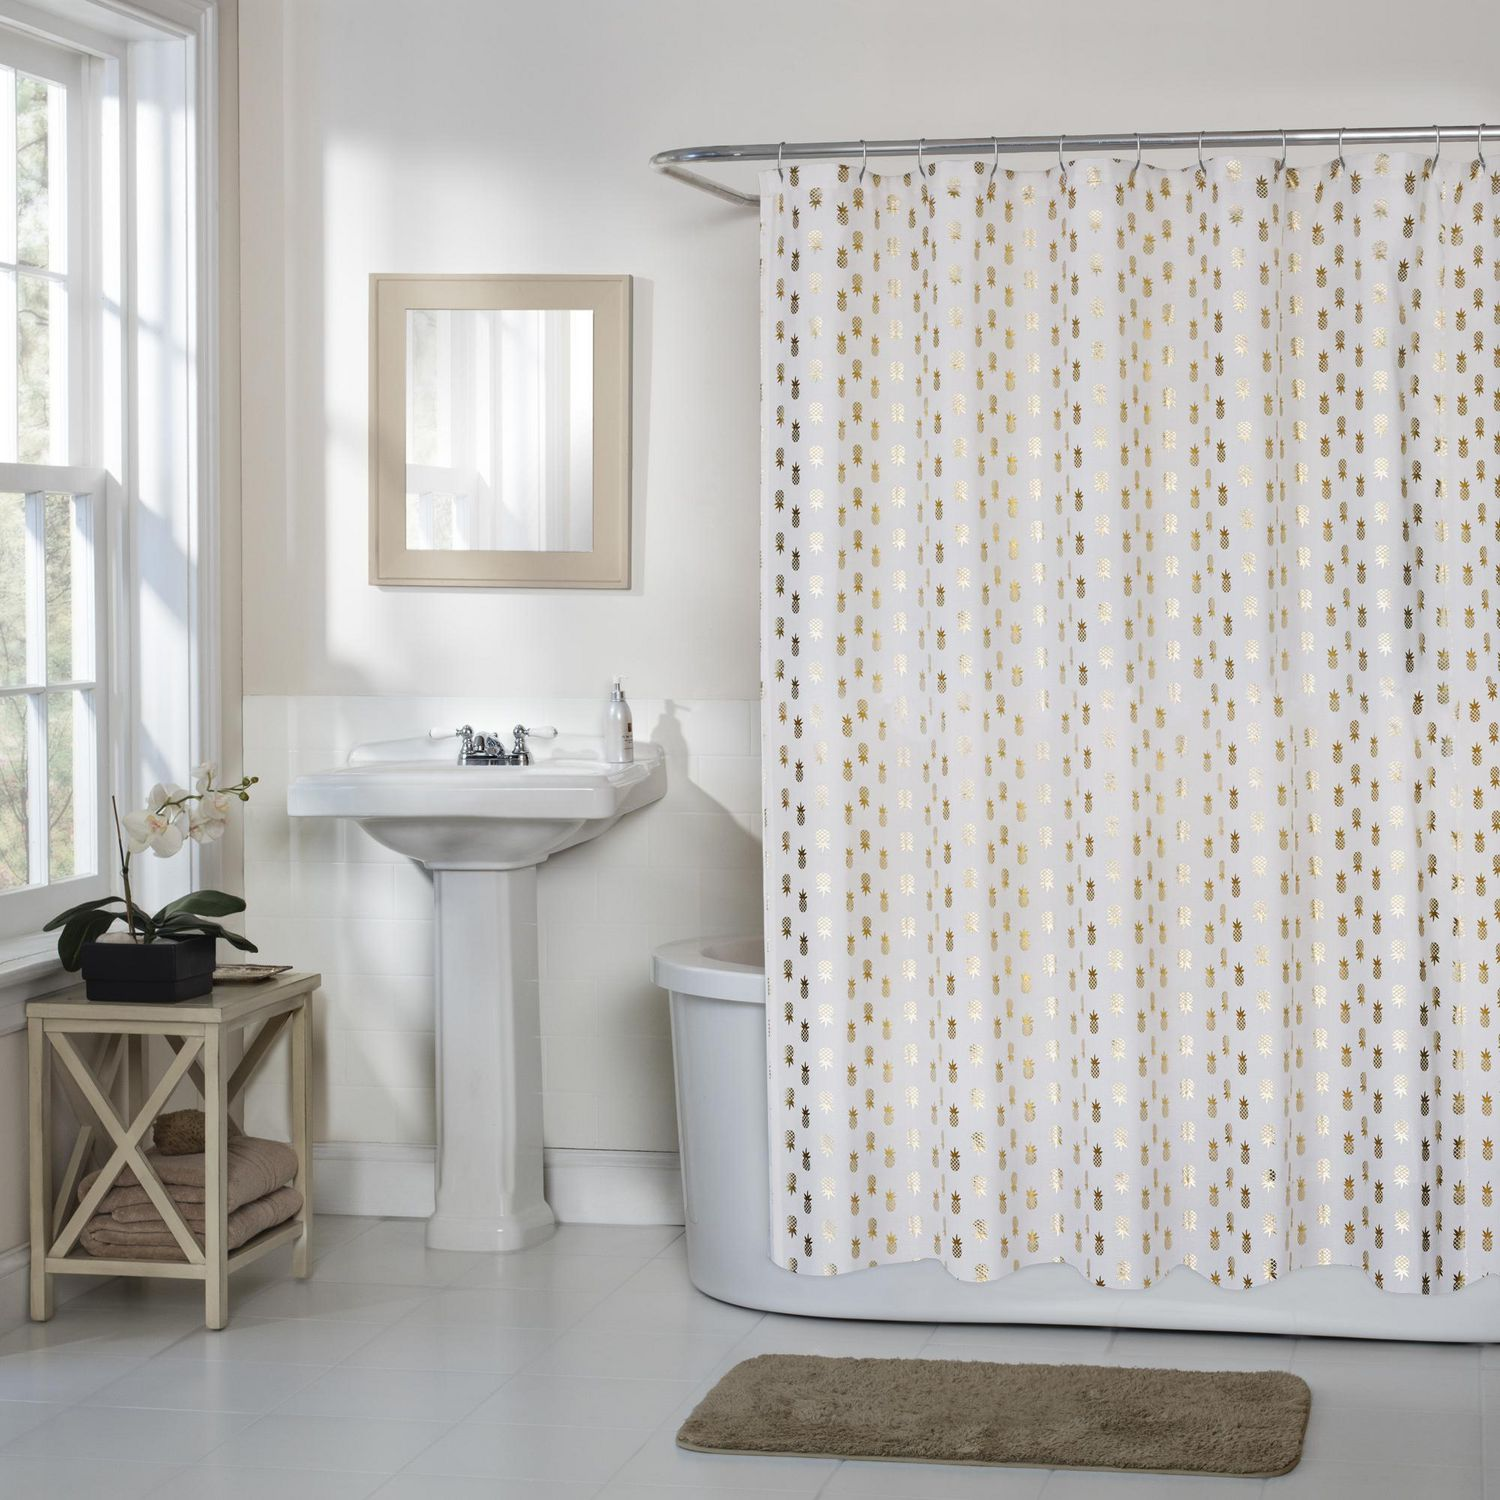 Pineapple Woven Textured Fabric Shower Curtain